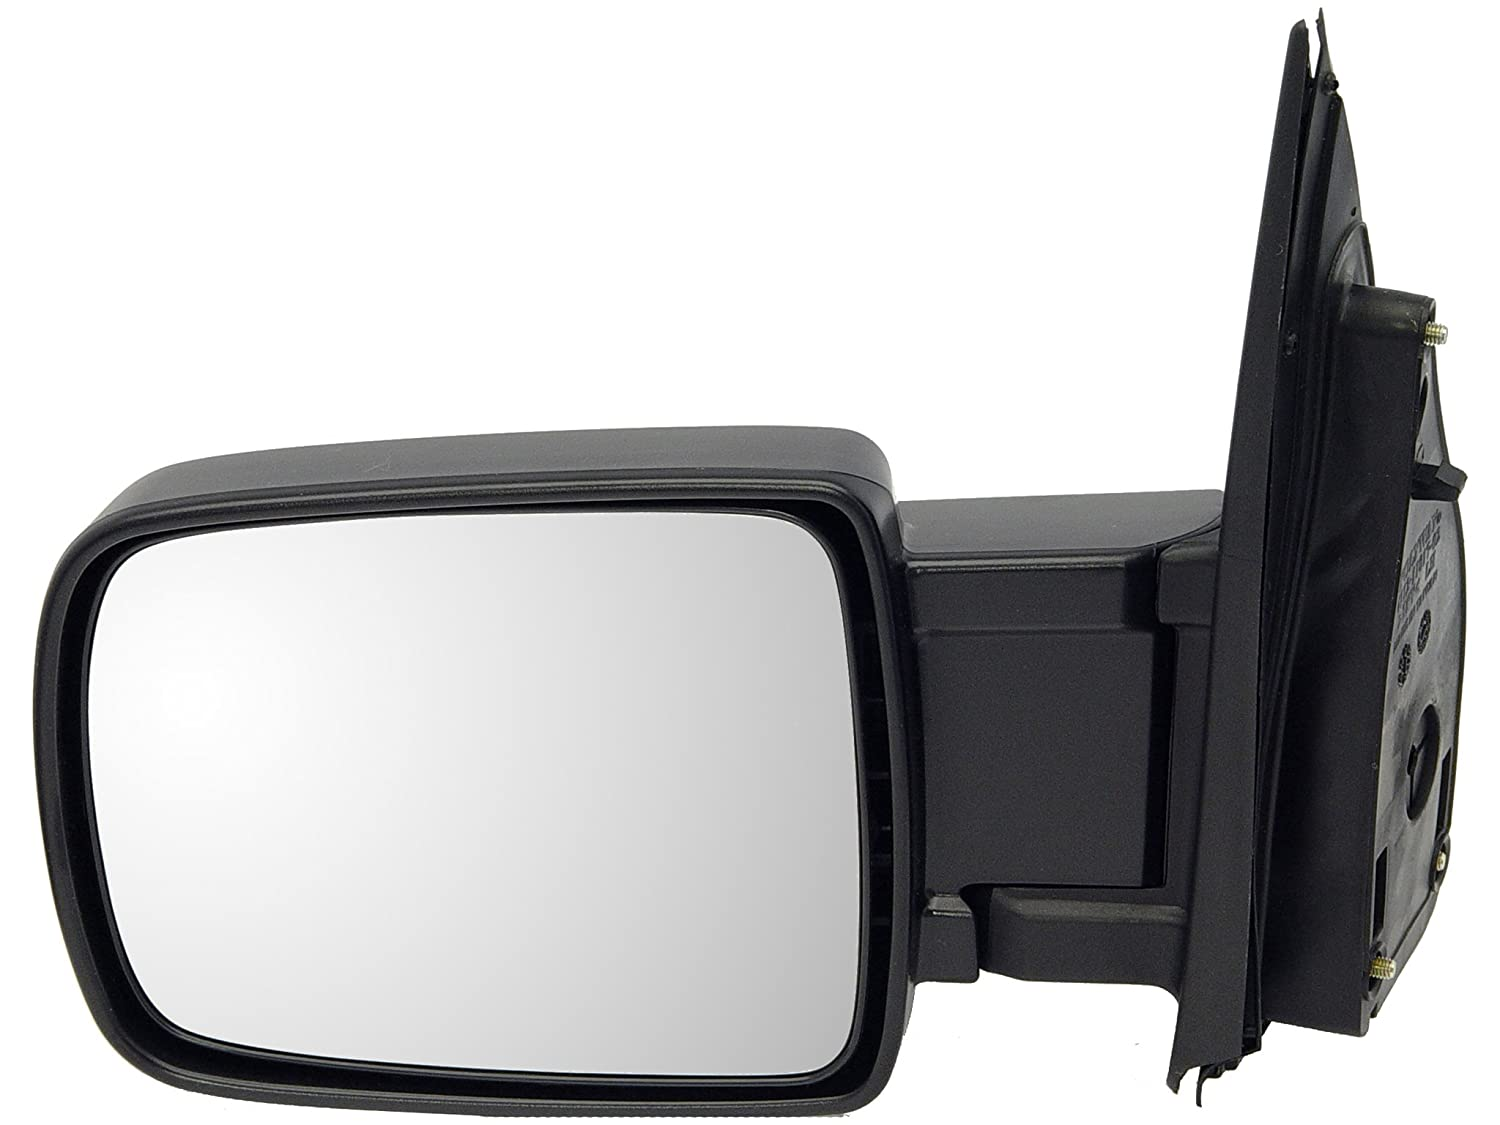 Dorman 955-1328 Honda Element Driver Side Manual Replacement Side View Mirror